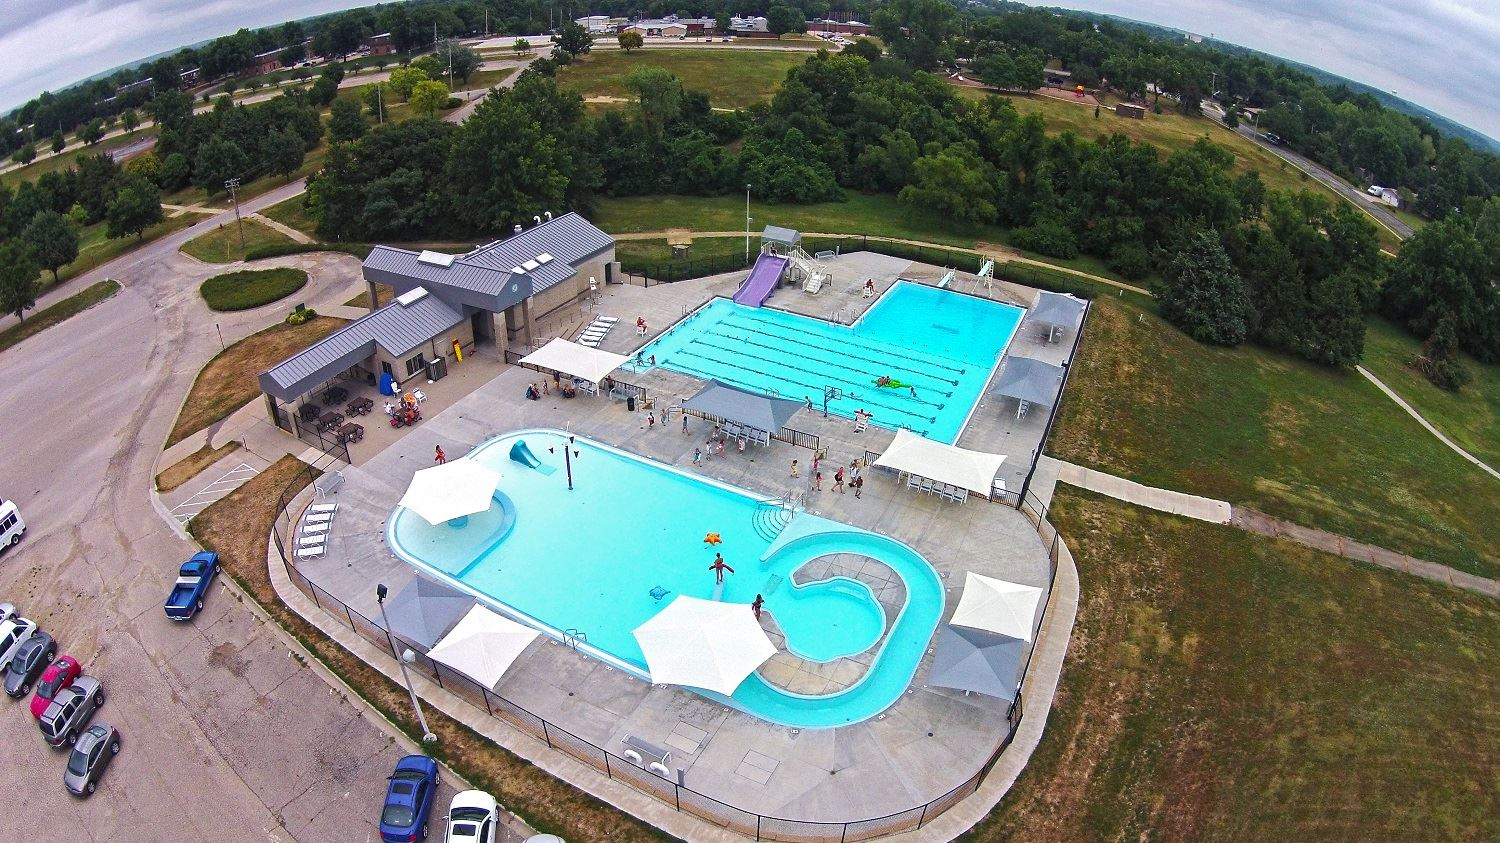 CiCo Pool aerial view